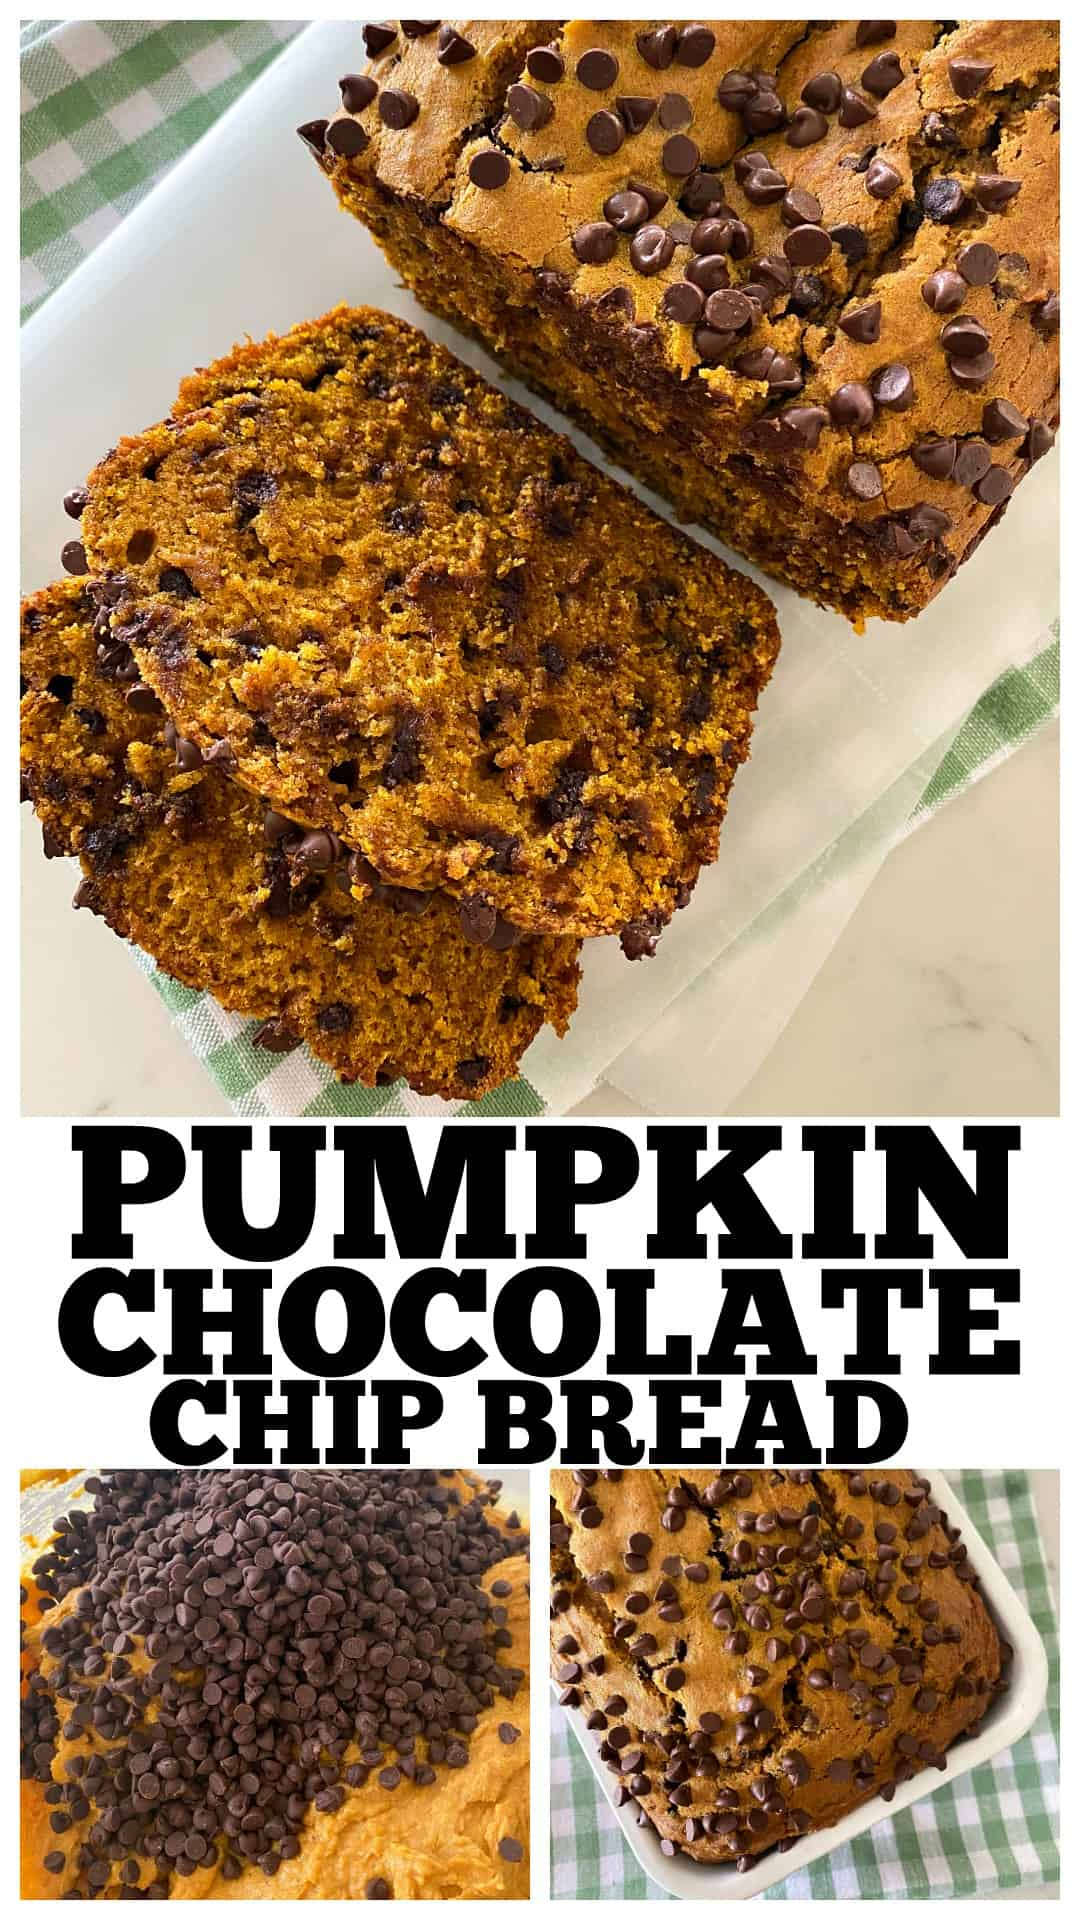 photo collage of pumpkin chocolate chip bread